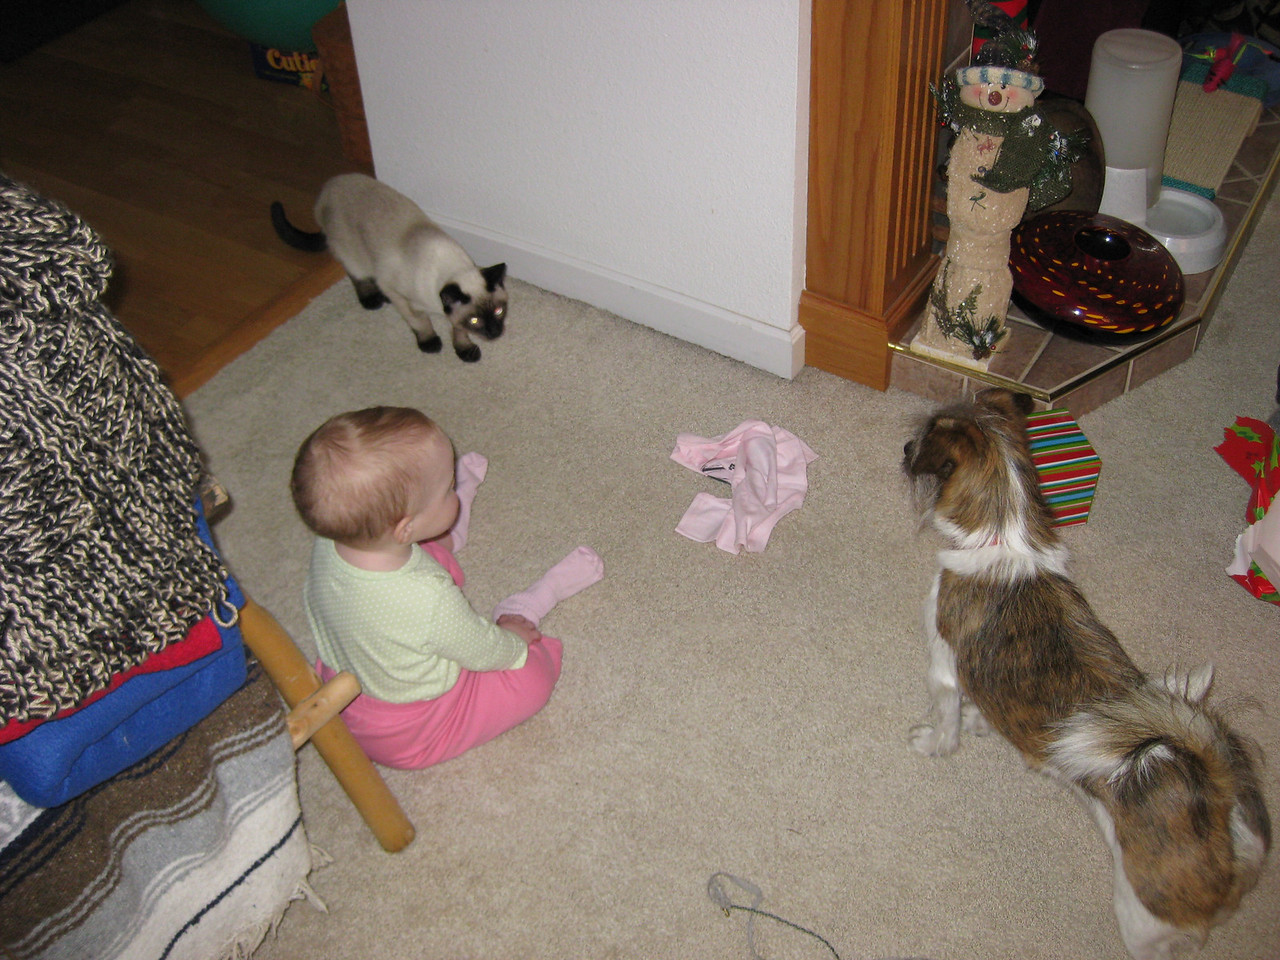 Zoe, Lucy and Moto, Mexican standoff